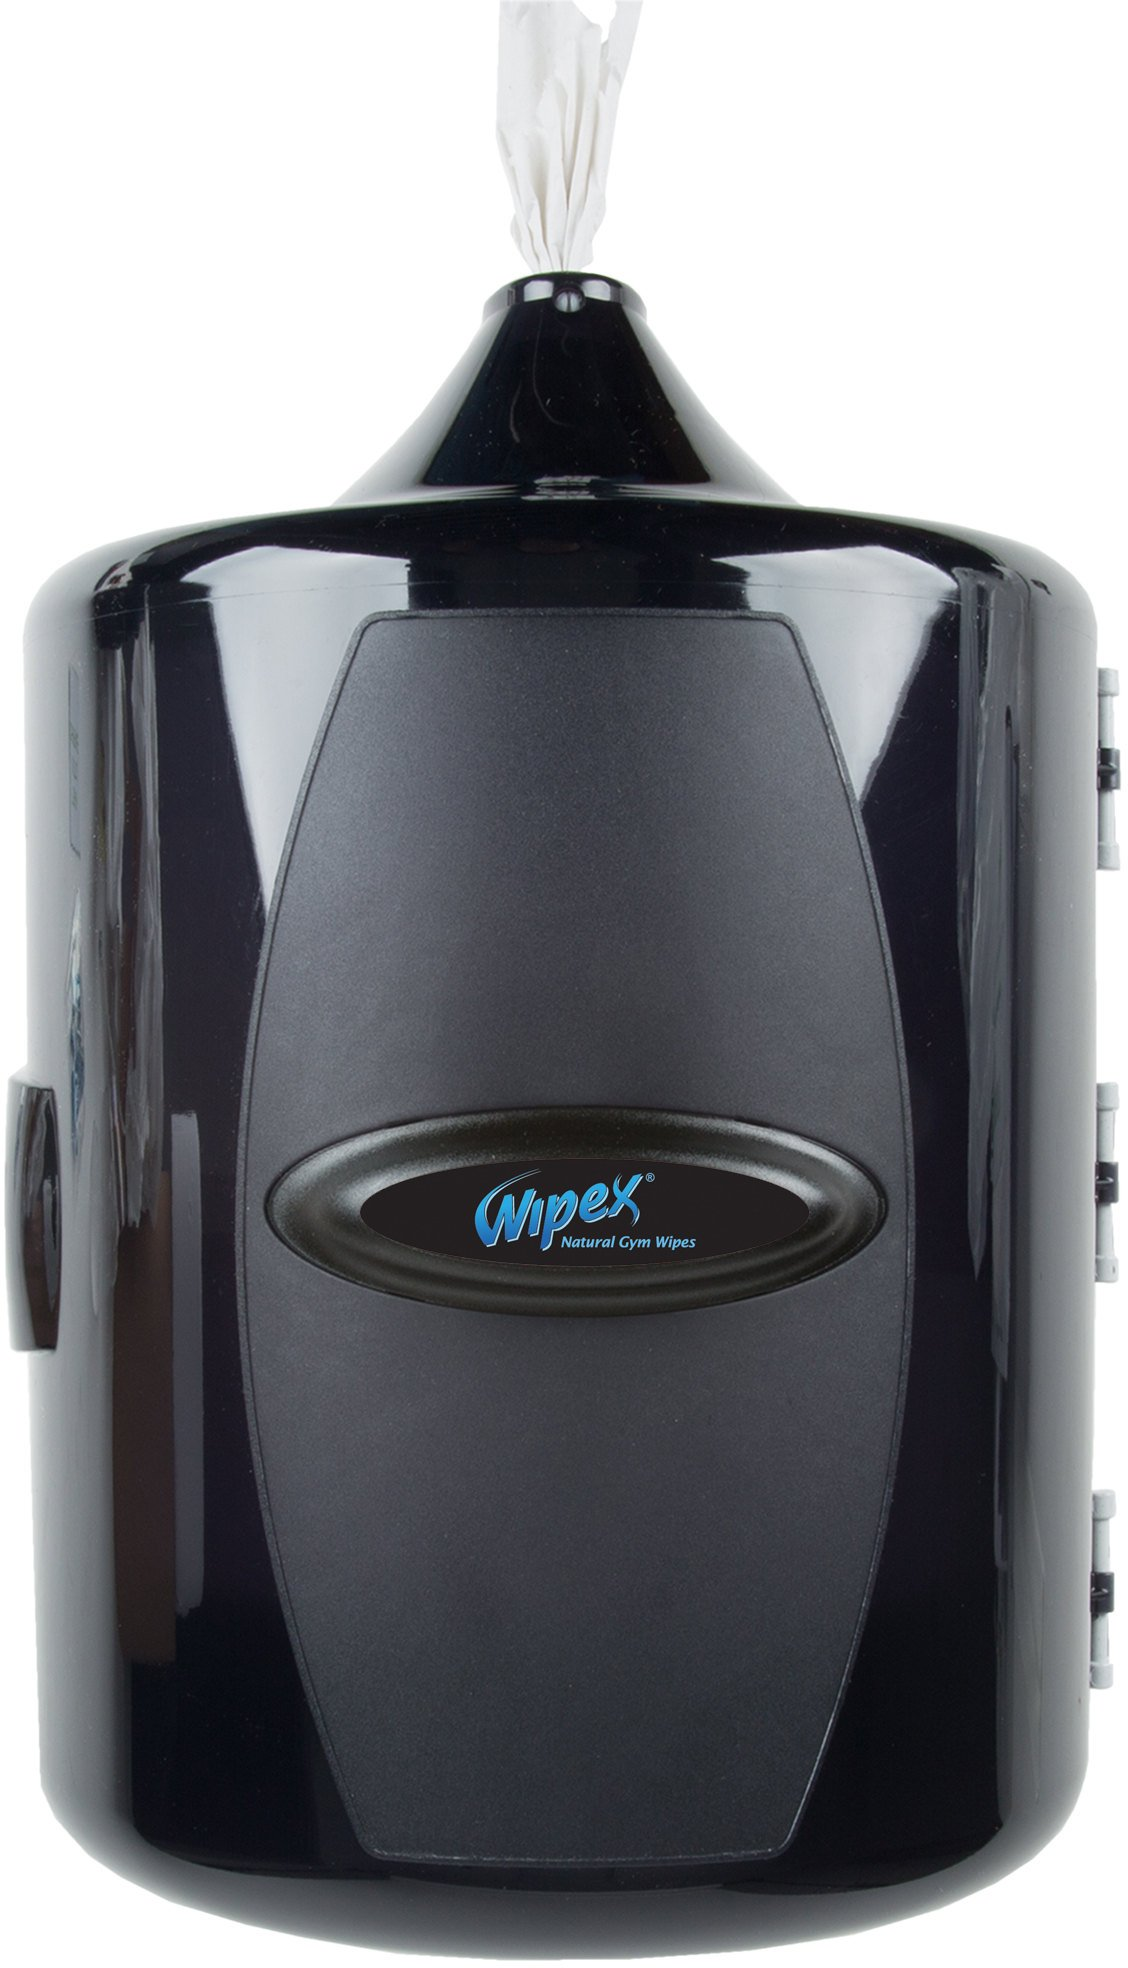 Wipex Wall Mounted Gym Wipes Dispenser for Gyms, Yoga, Health & Fitness Centers by Wipex